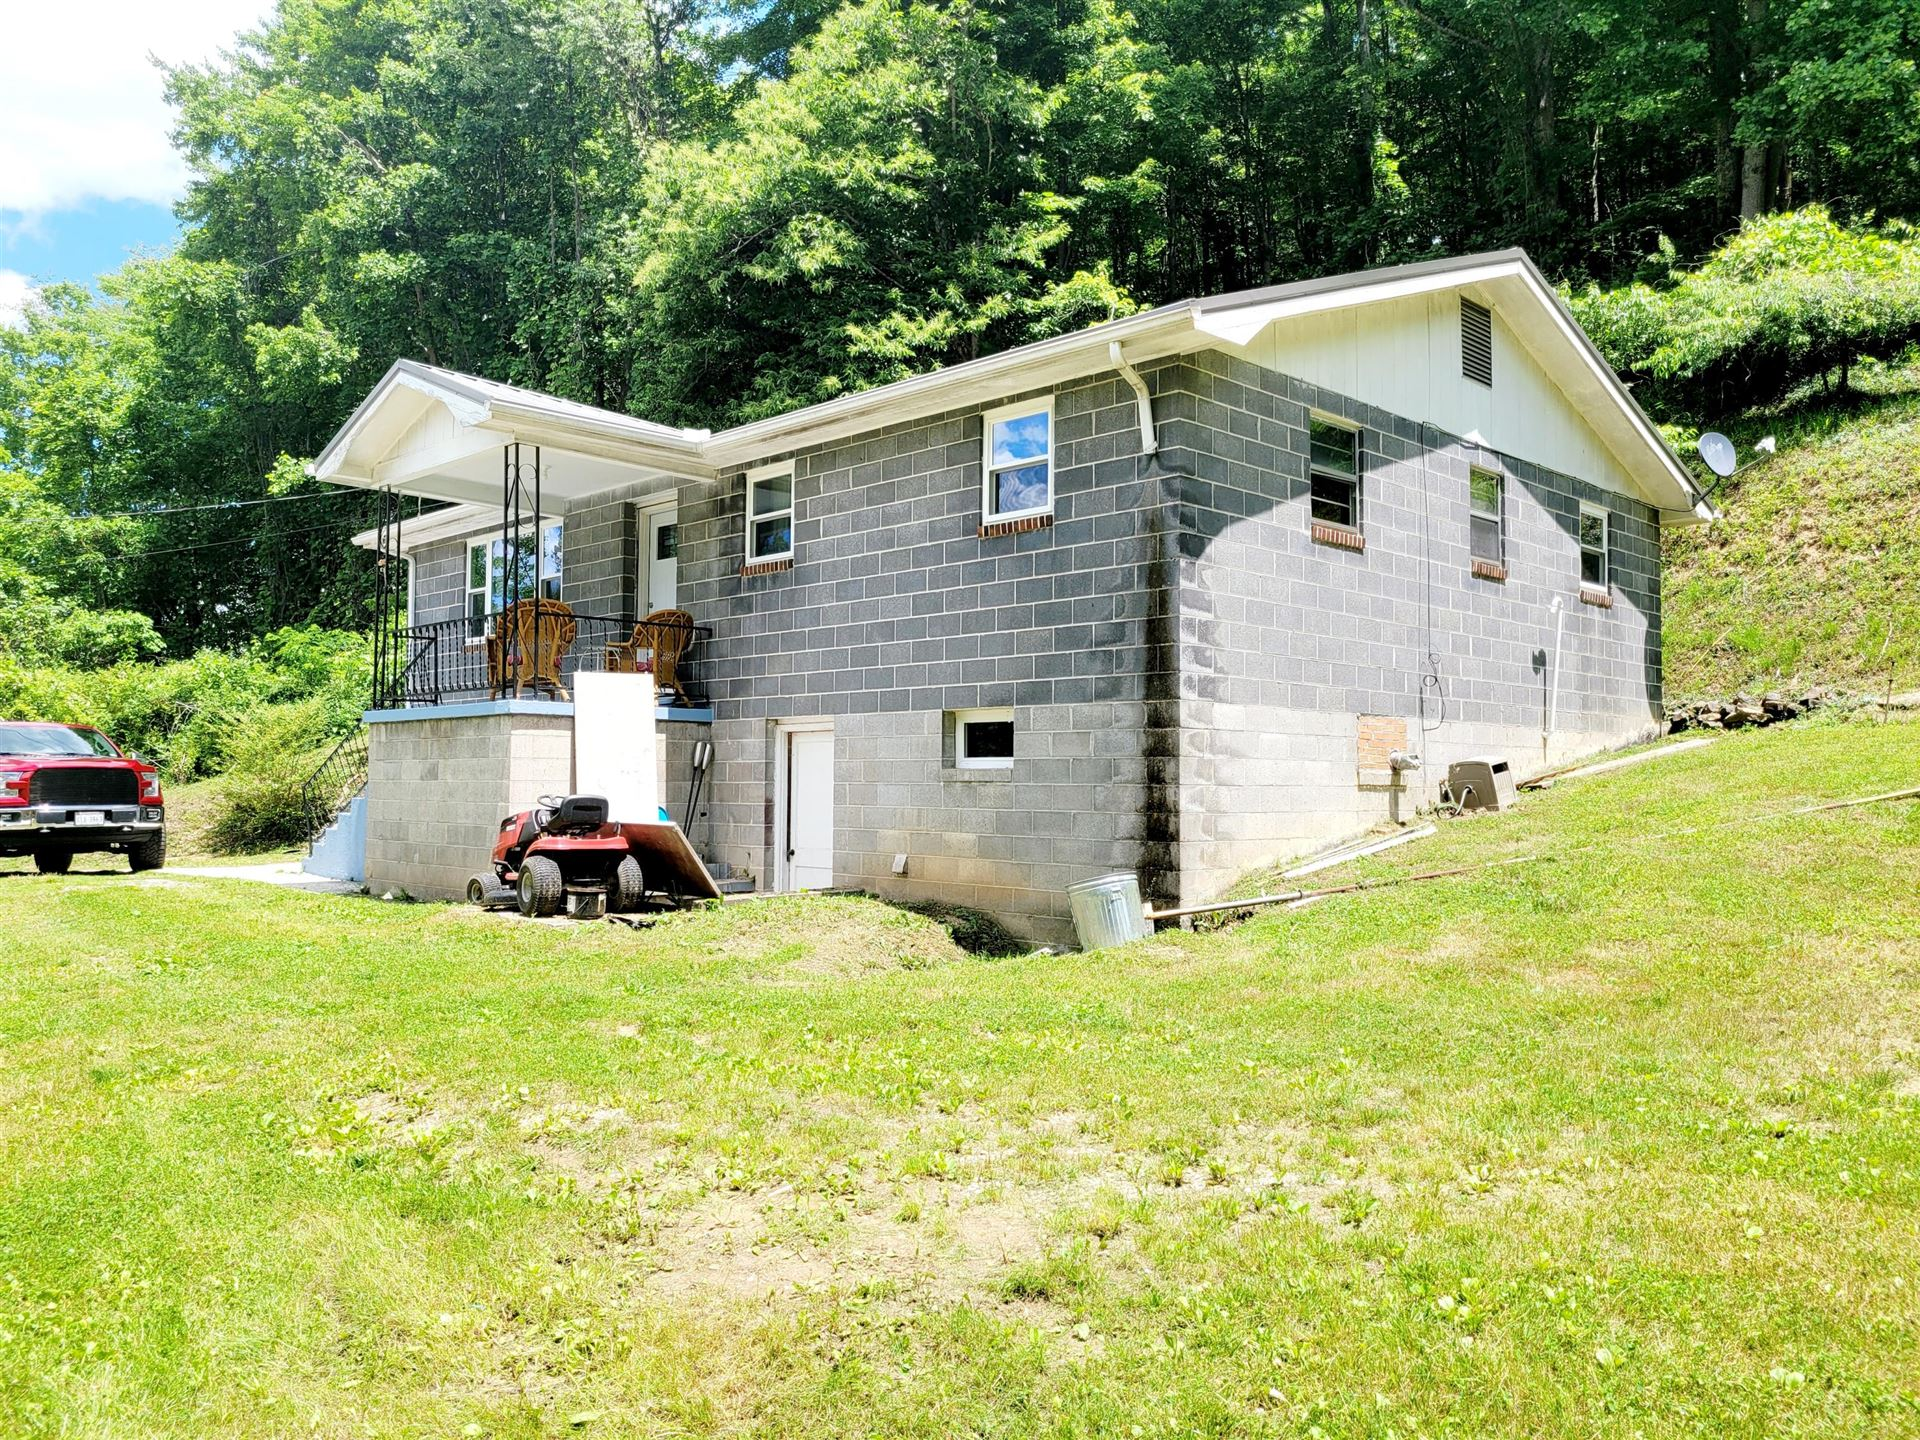 Photo of 512 Power House Hollow, Clintwood, VA 24228 (MLS # 9923723)